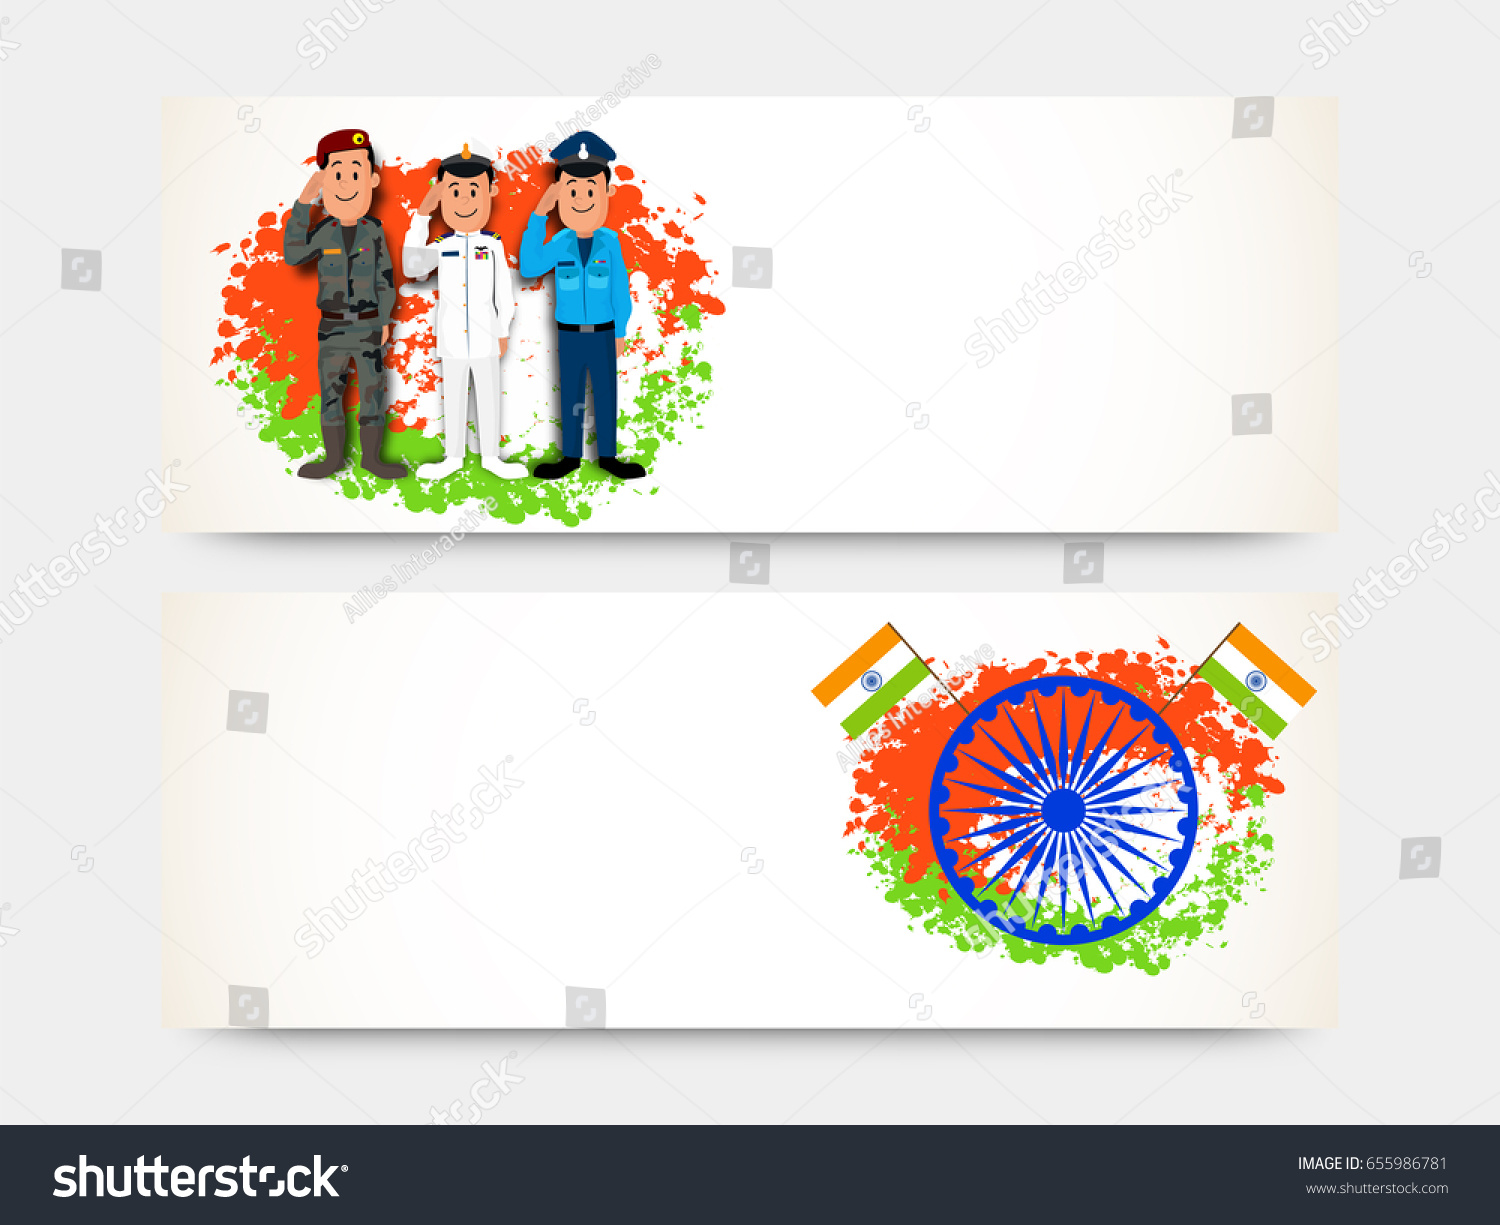 Colors website ashoka - Website Headers Or Banners Set With Saluting Army Officers And Ashoka Wheel On Splash For Indian